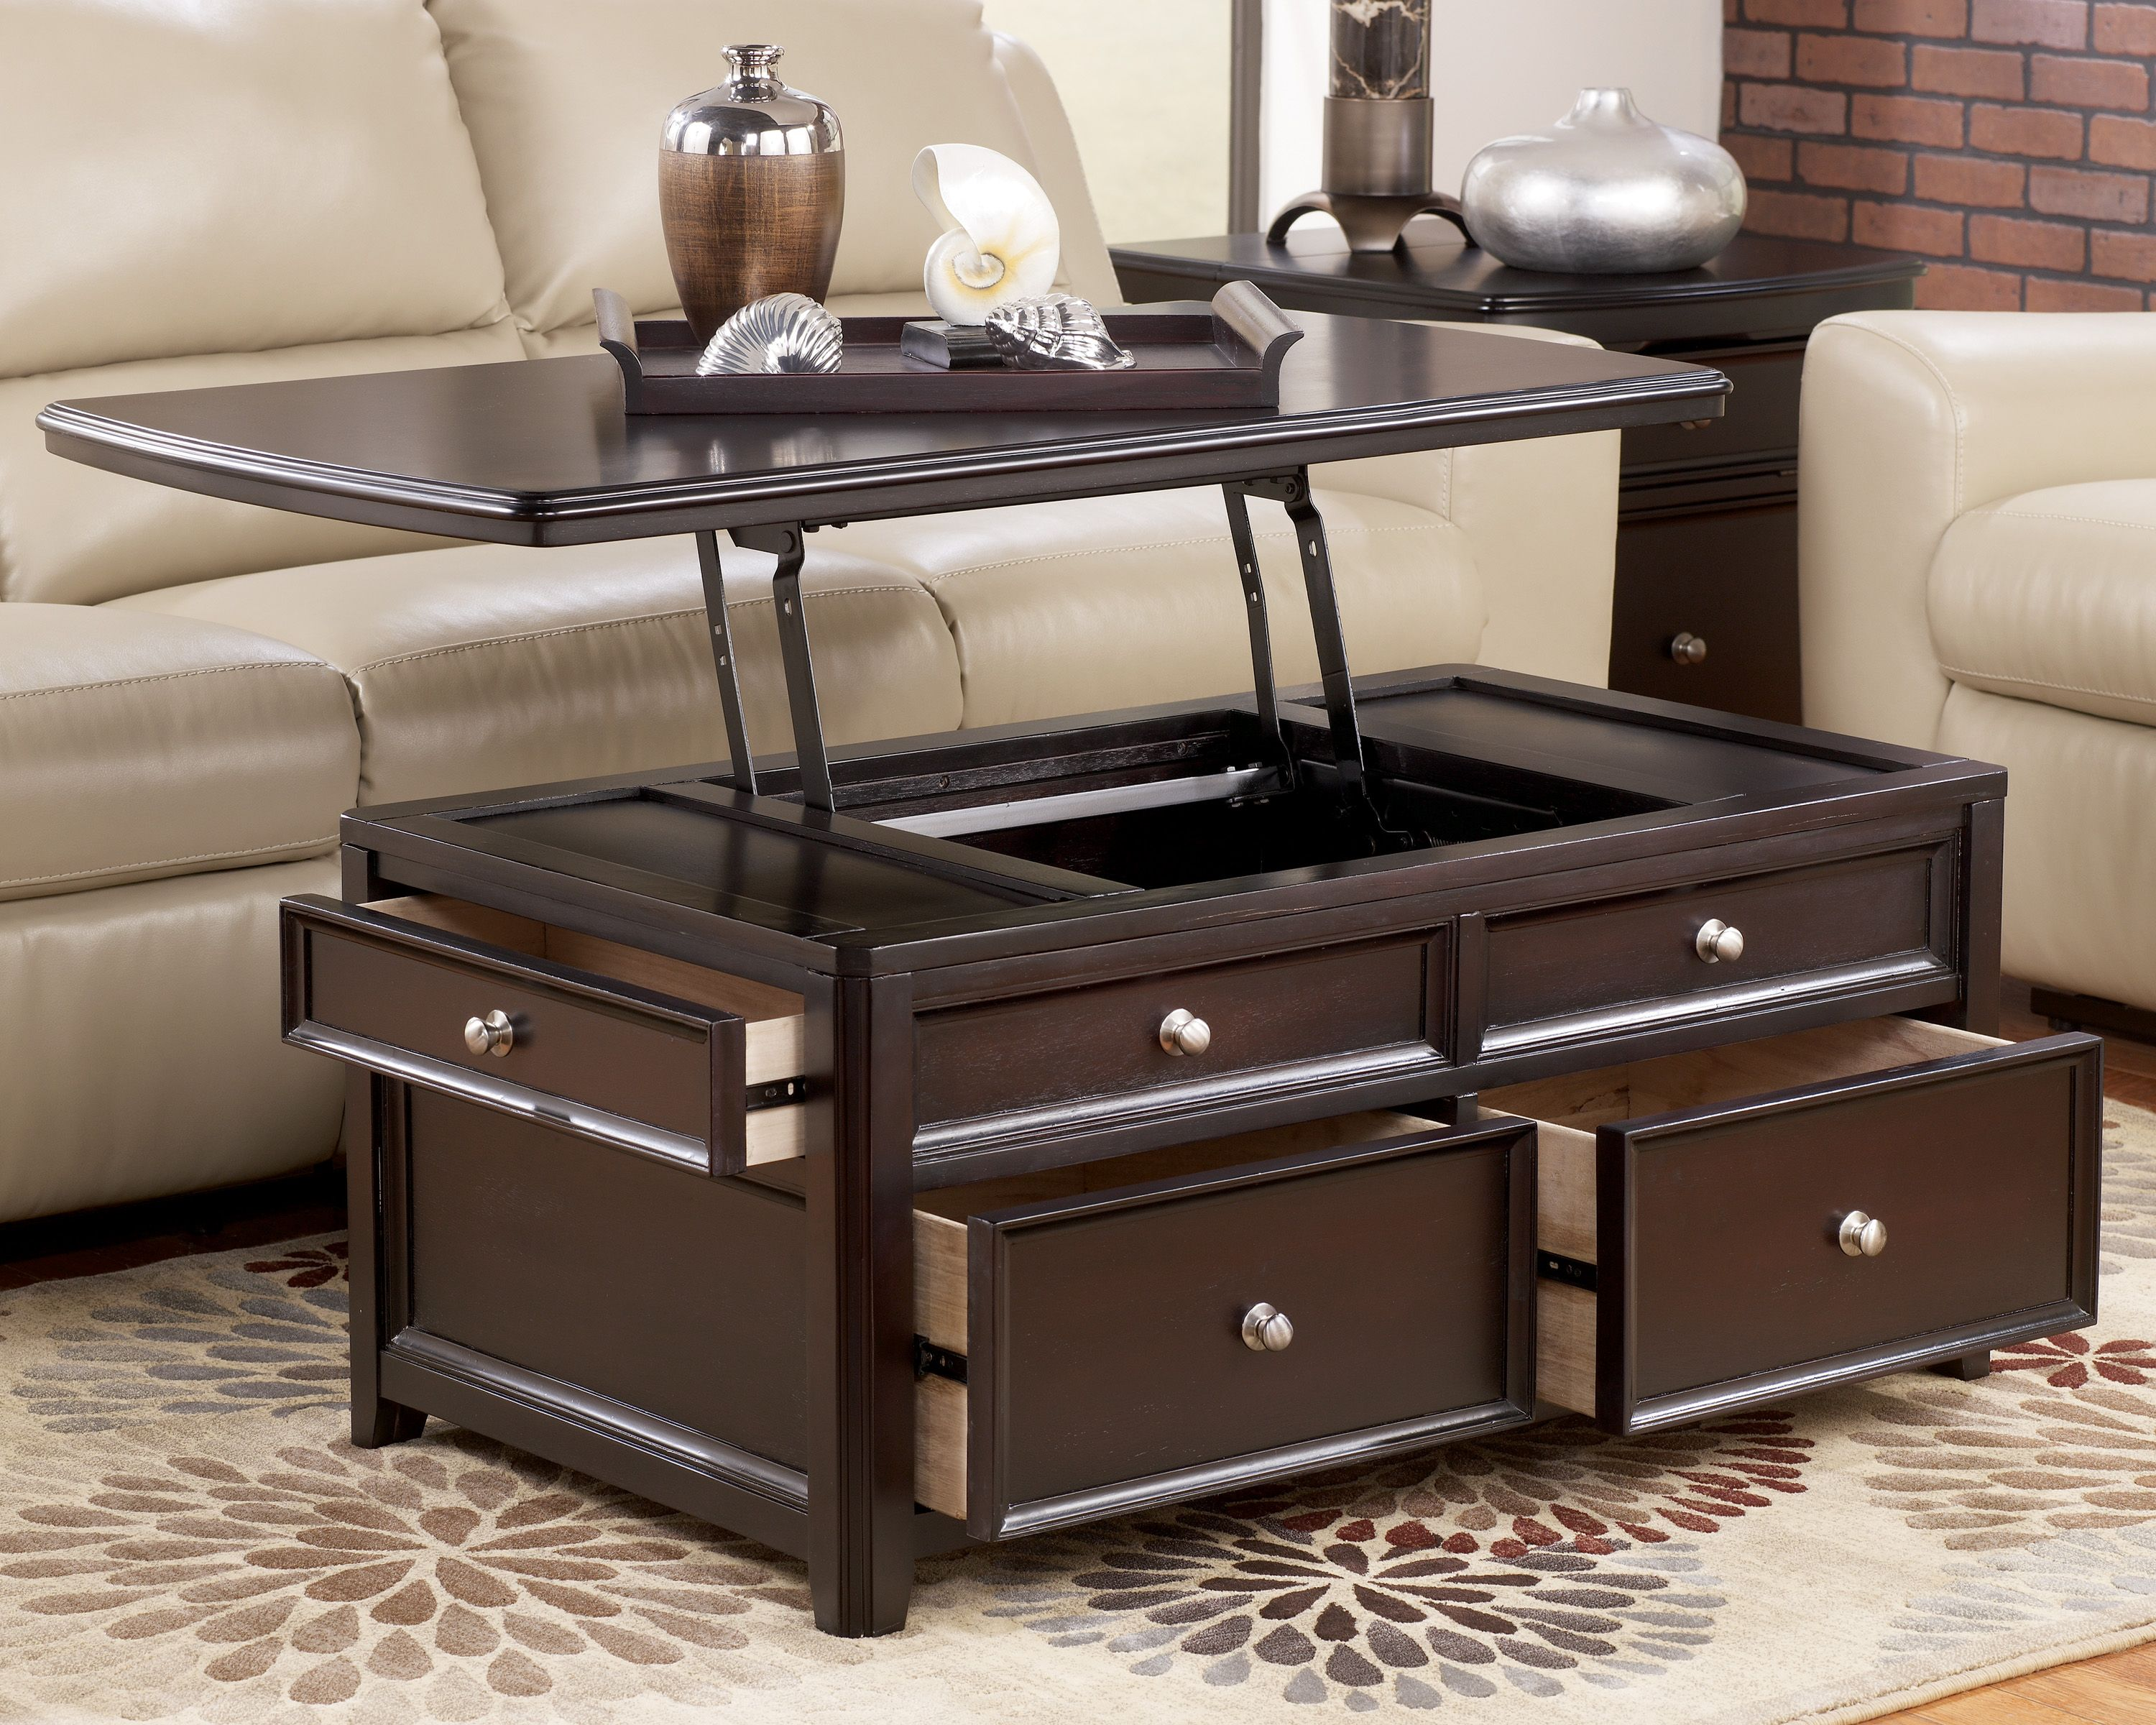 Coffee table with lift up top modern lift top coffee table coffee table with lift up top modern lift top coffee table reviewed by national furniture geotapseo Image collections